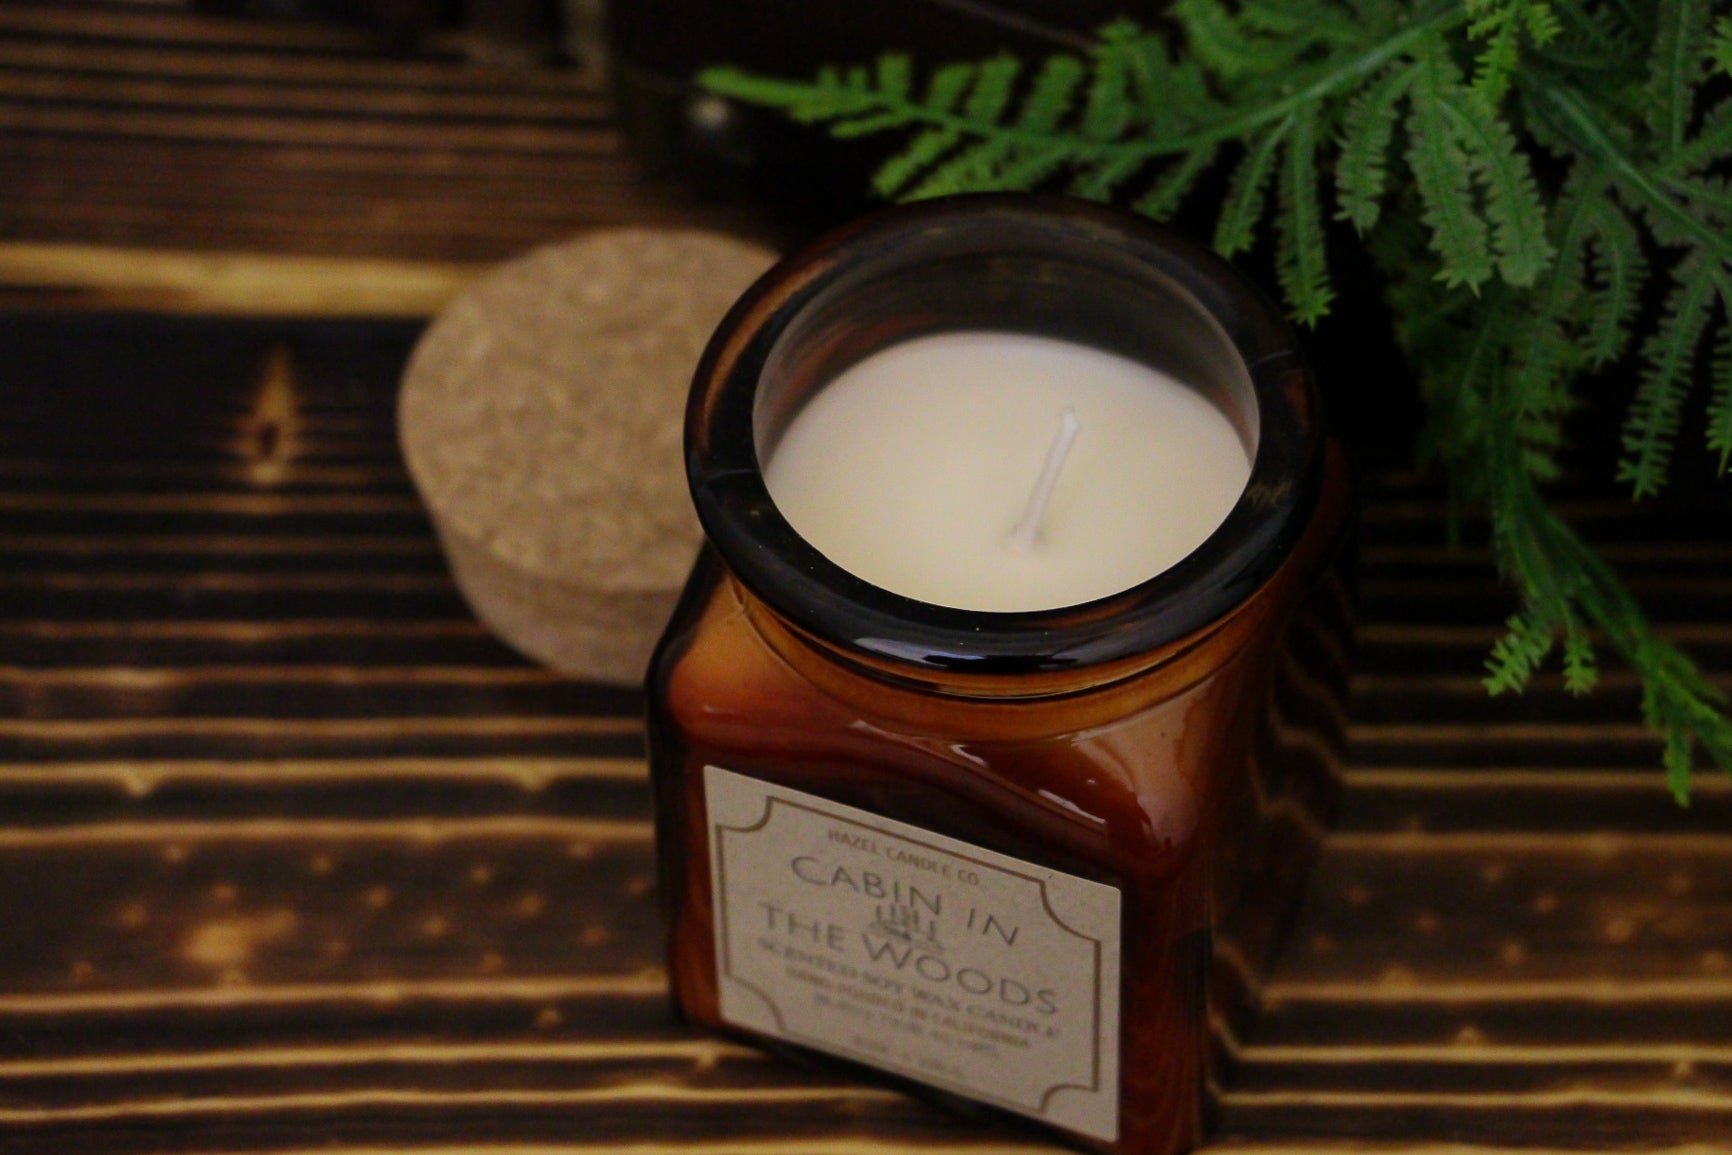 Cabin in the Woods Soy Candle